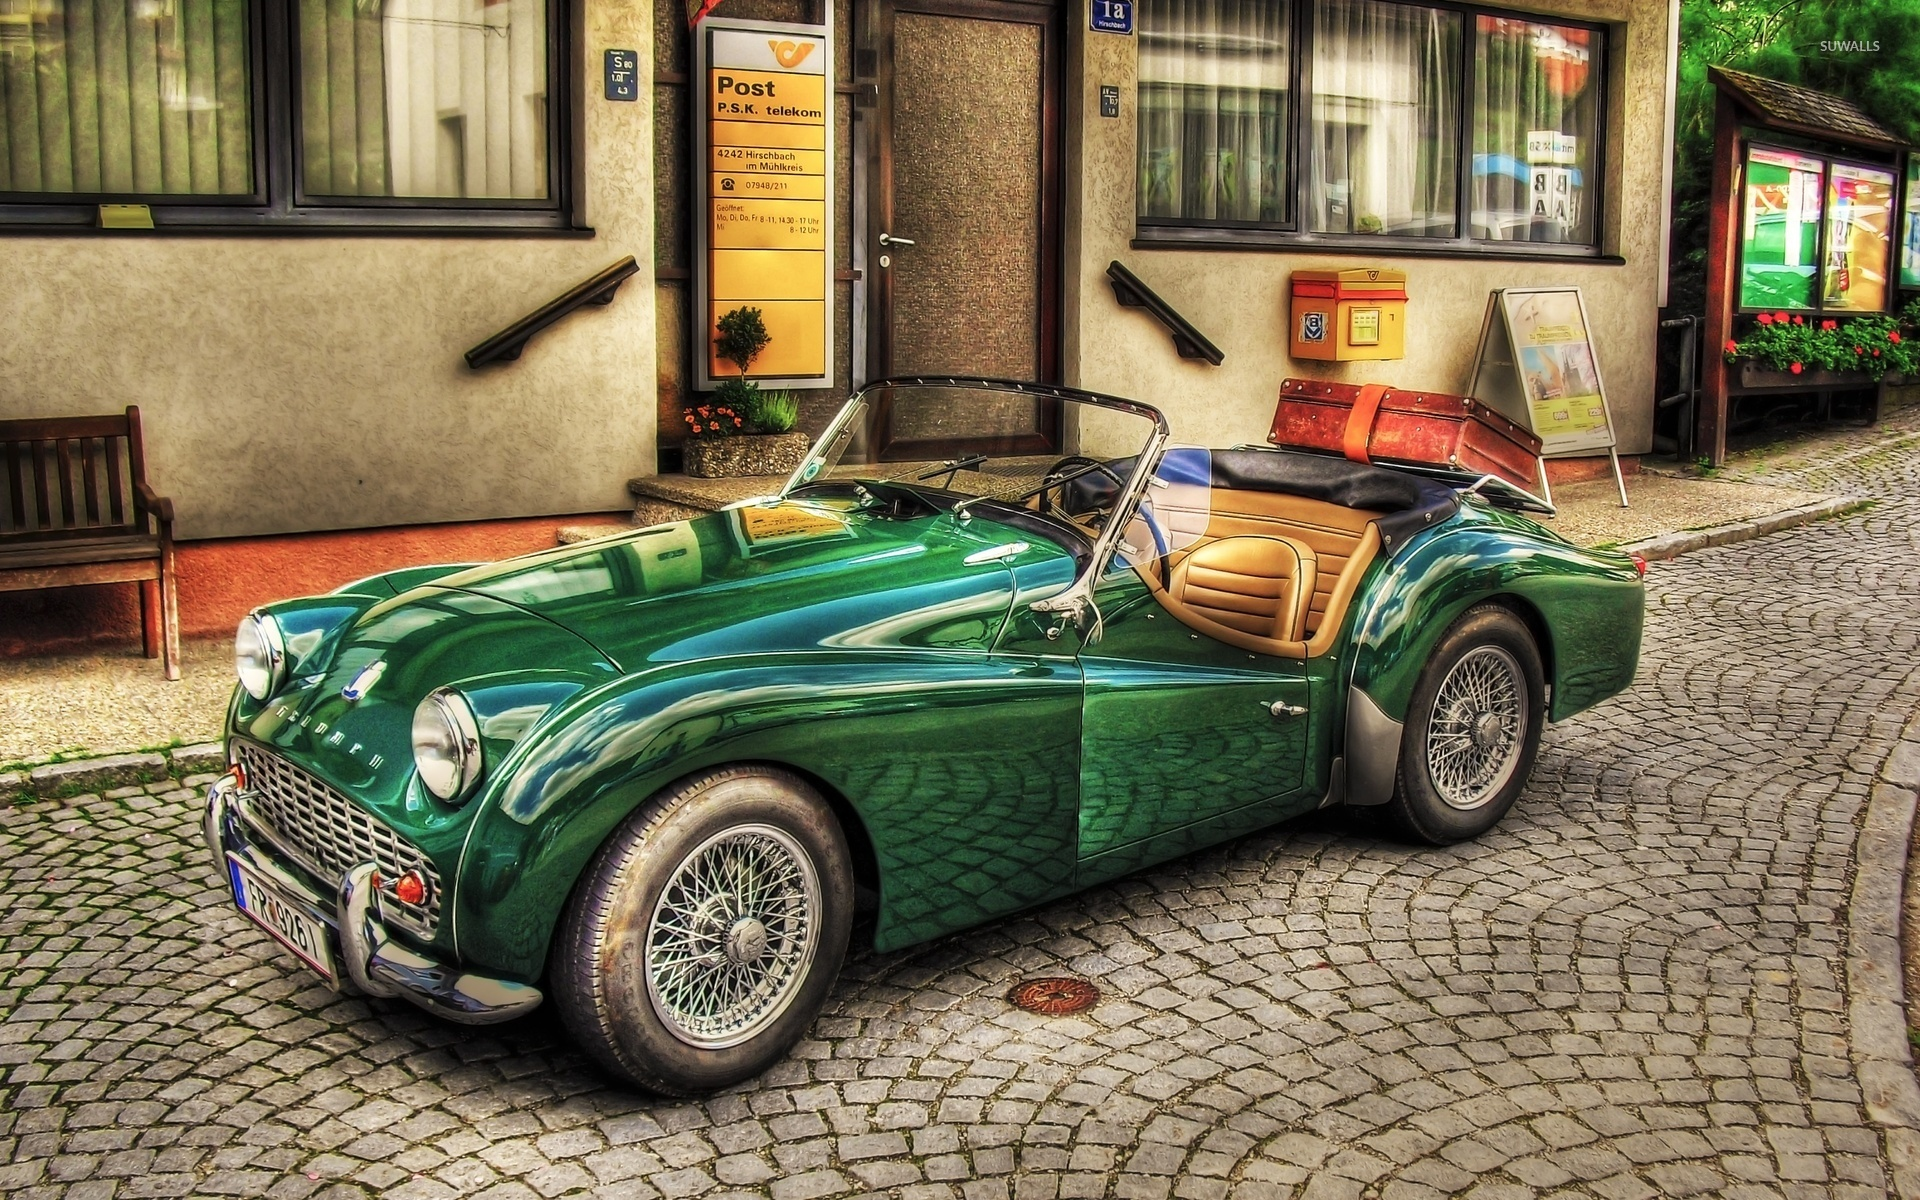 Unusual Ferrari Car Motorcycle as well Nrkg3xe furthermore Triumph Spitfire 45278 in addition How To Take Wrap Off A Nissan Gtr Video also Cool Abarth Tuning Wallpaper. on fiat 500 funny car